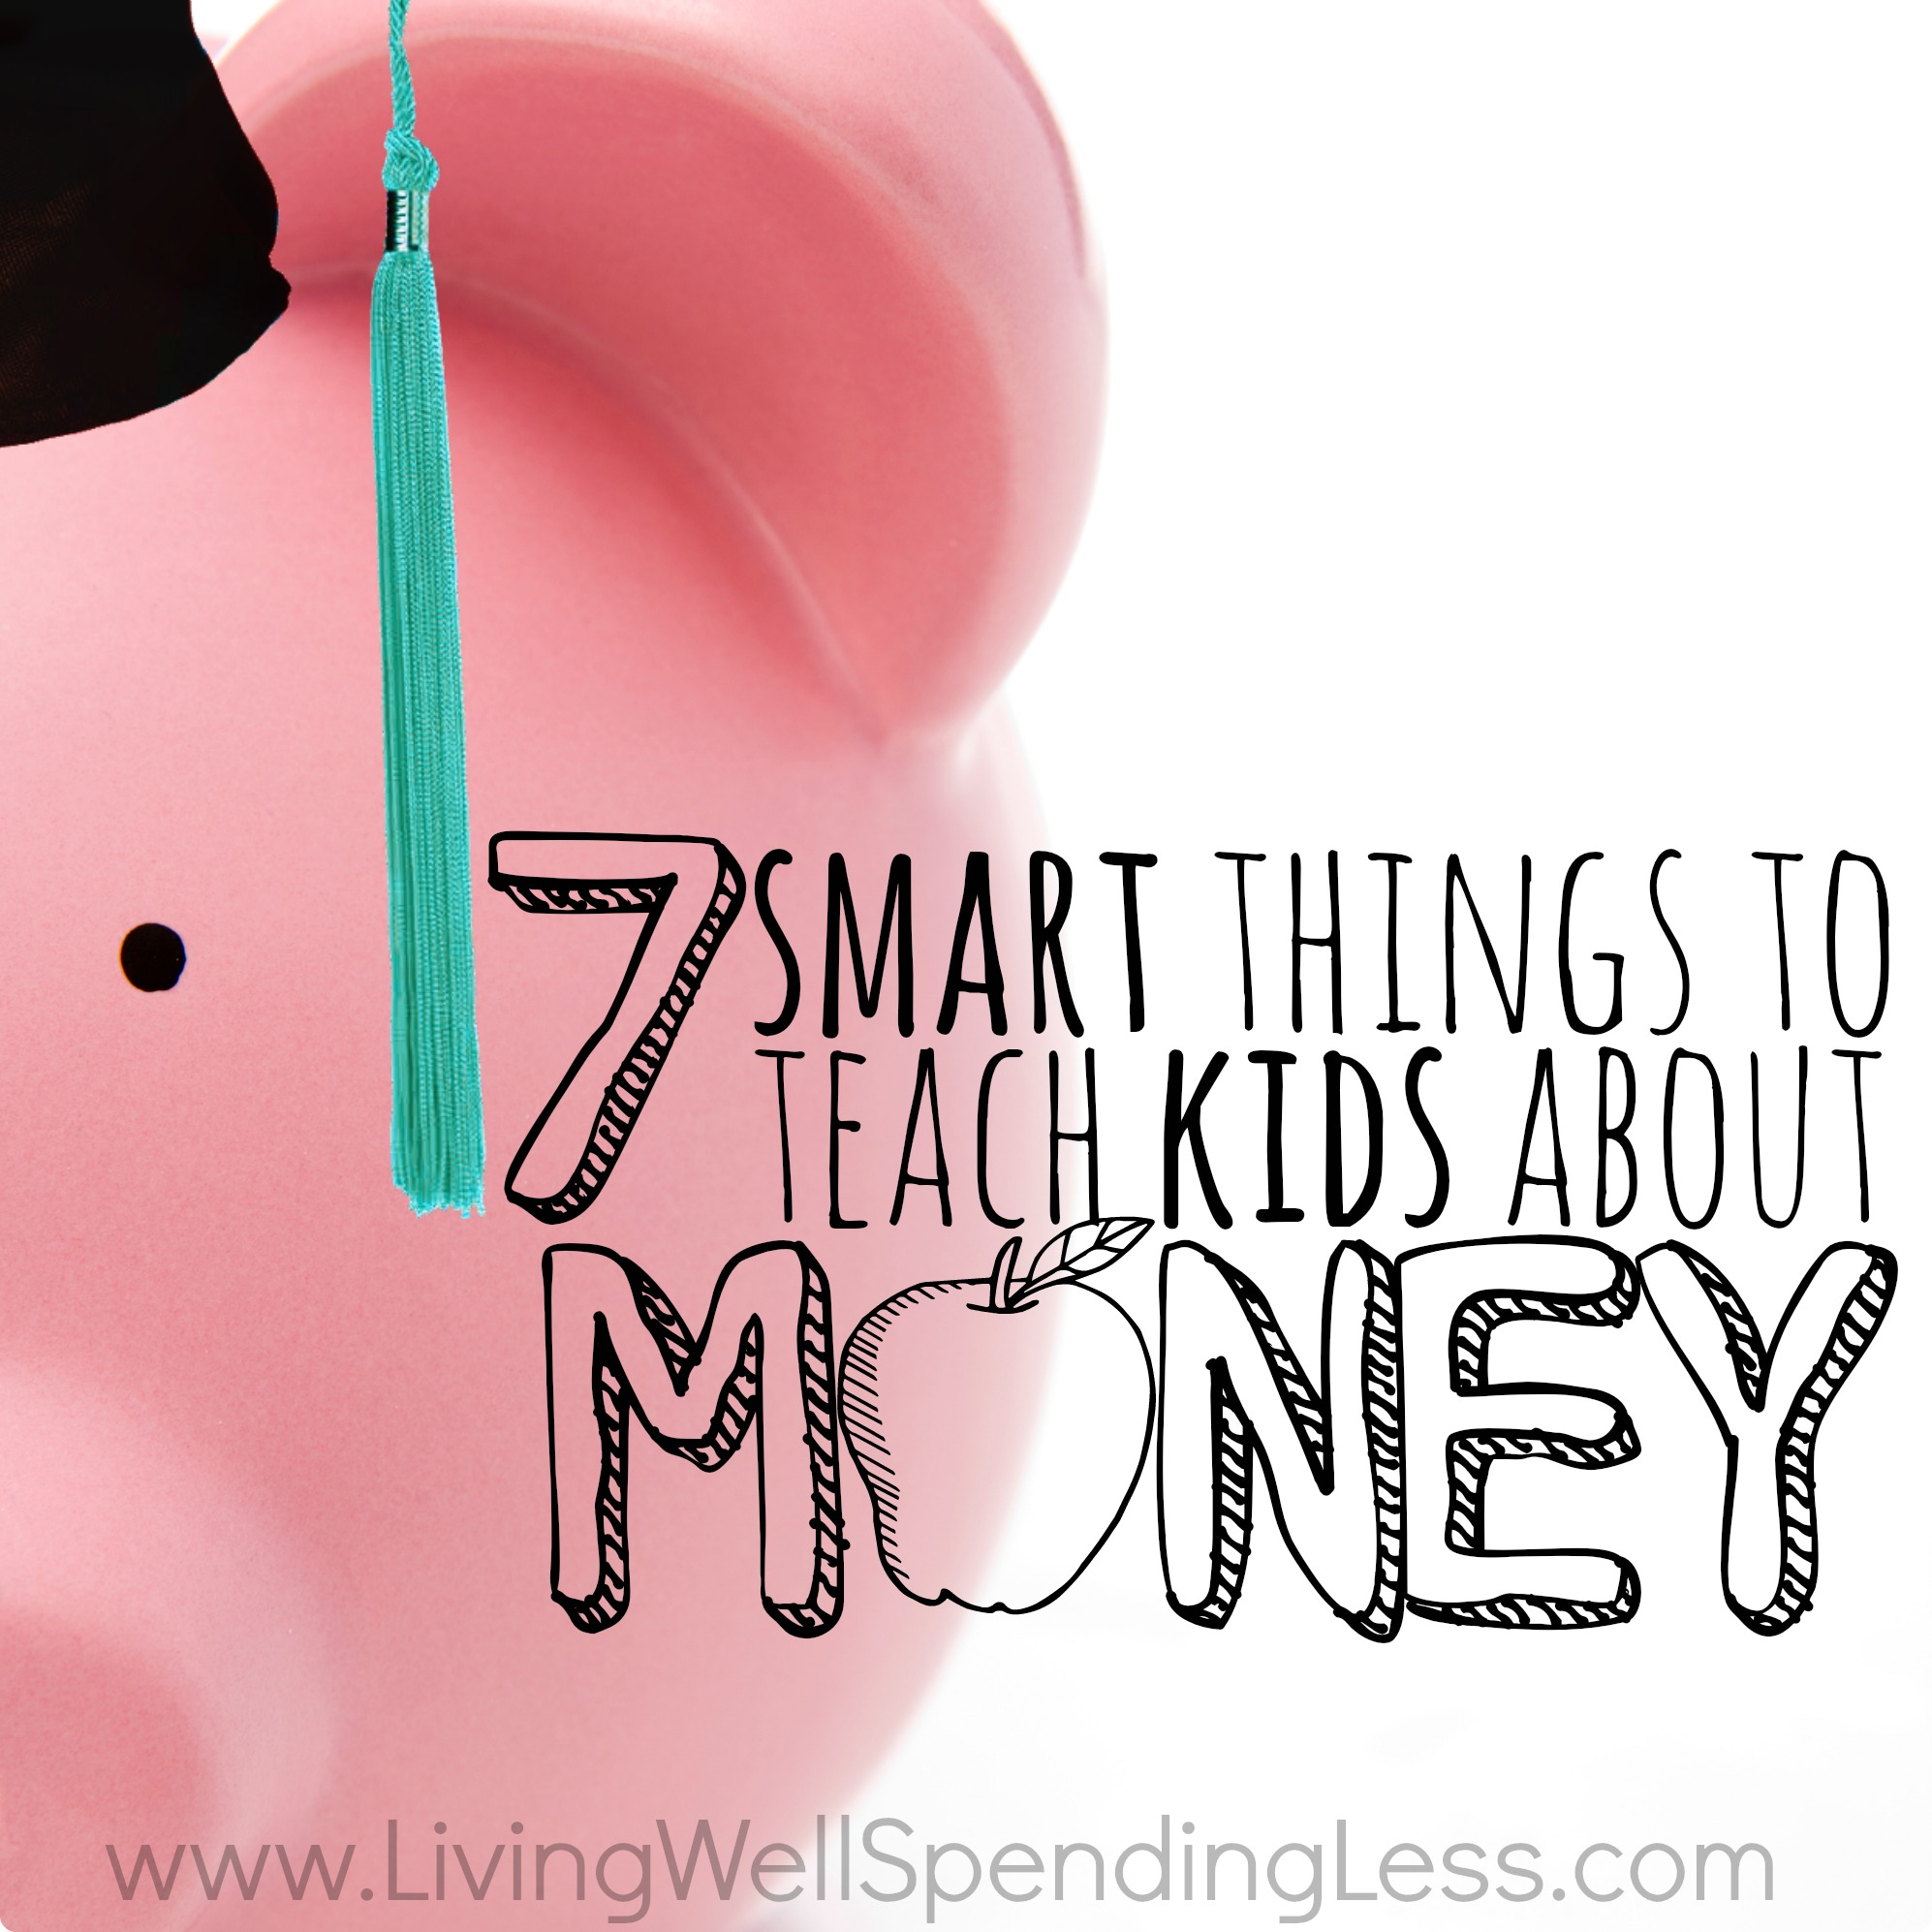 7 Smart Things To Teach Kids About Money